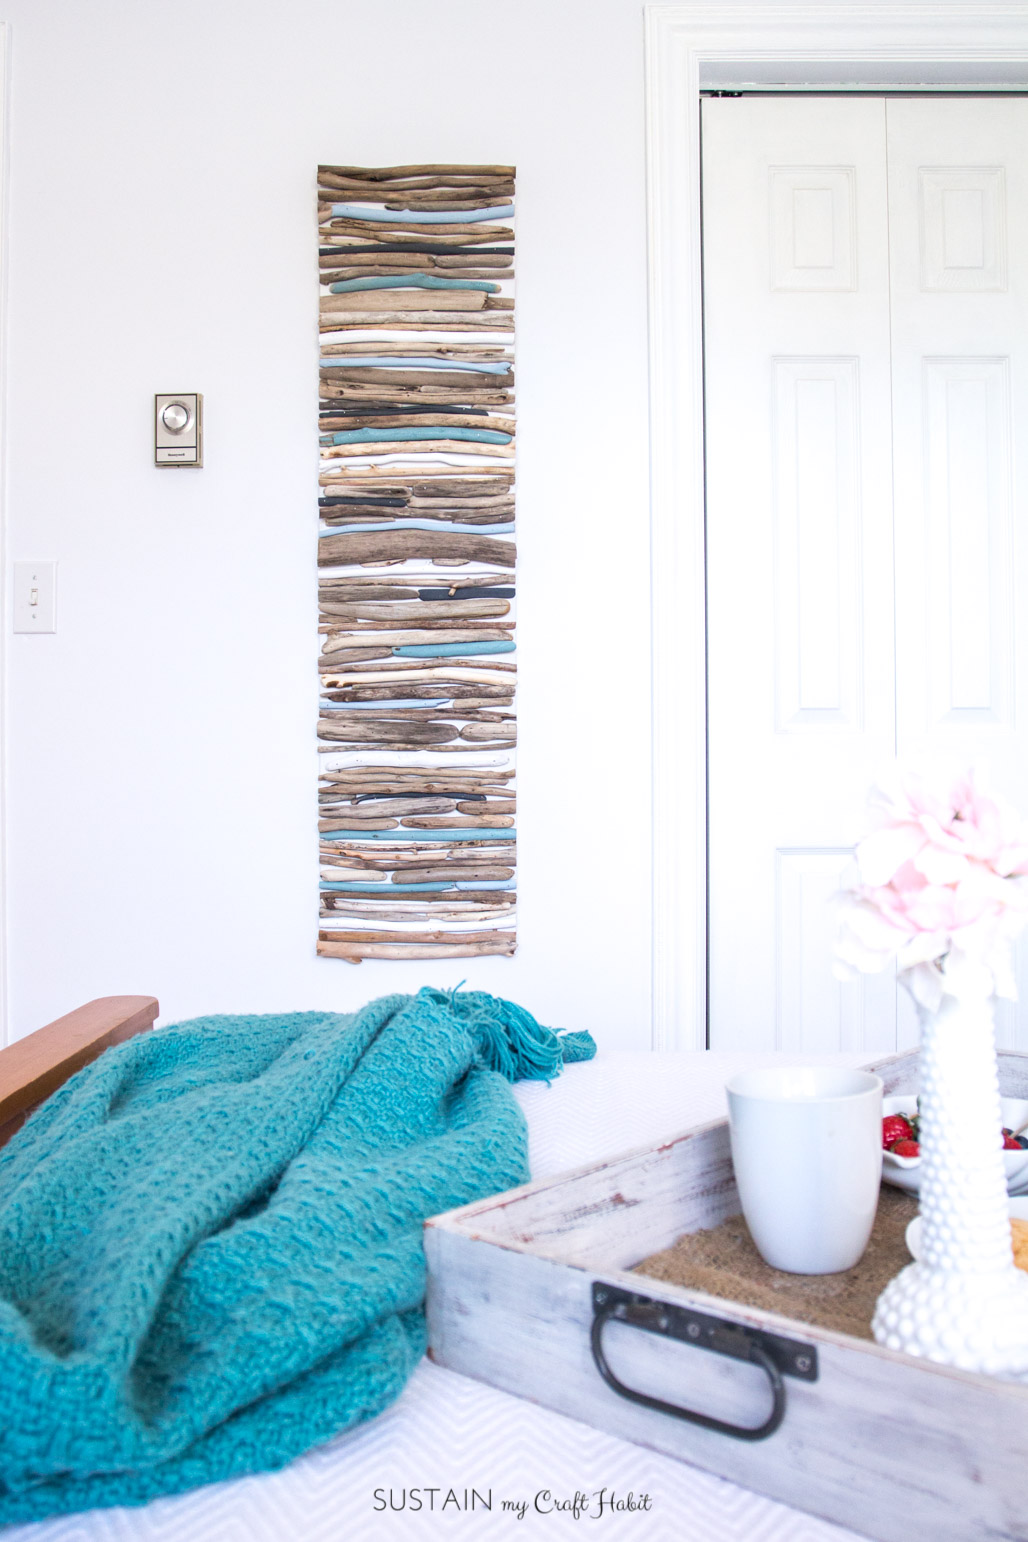 Diy coastal decor painted driftwood wall art sustain for Best home decor blogs uk